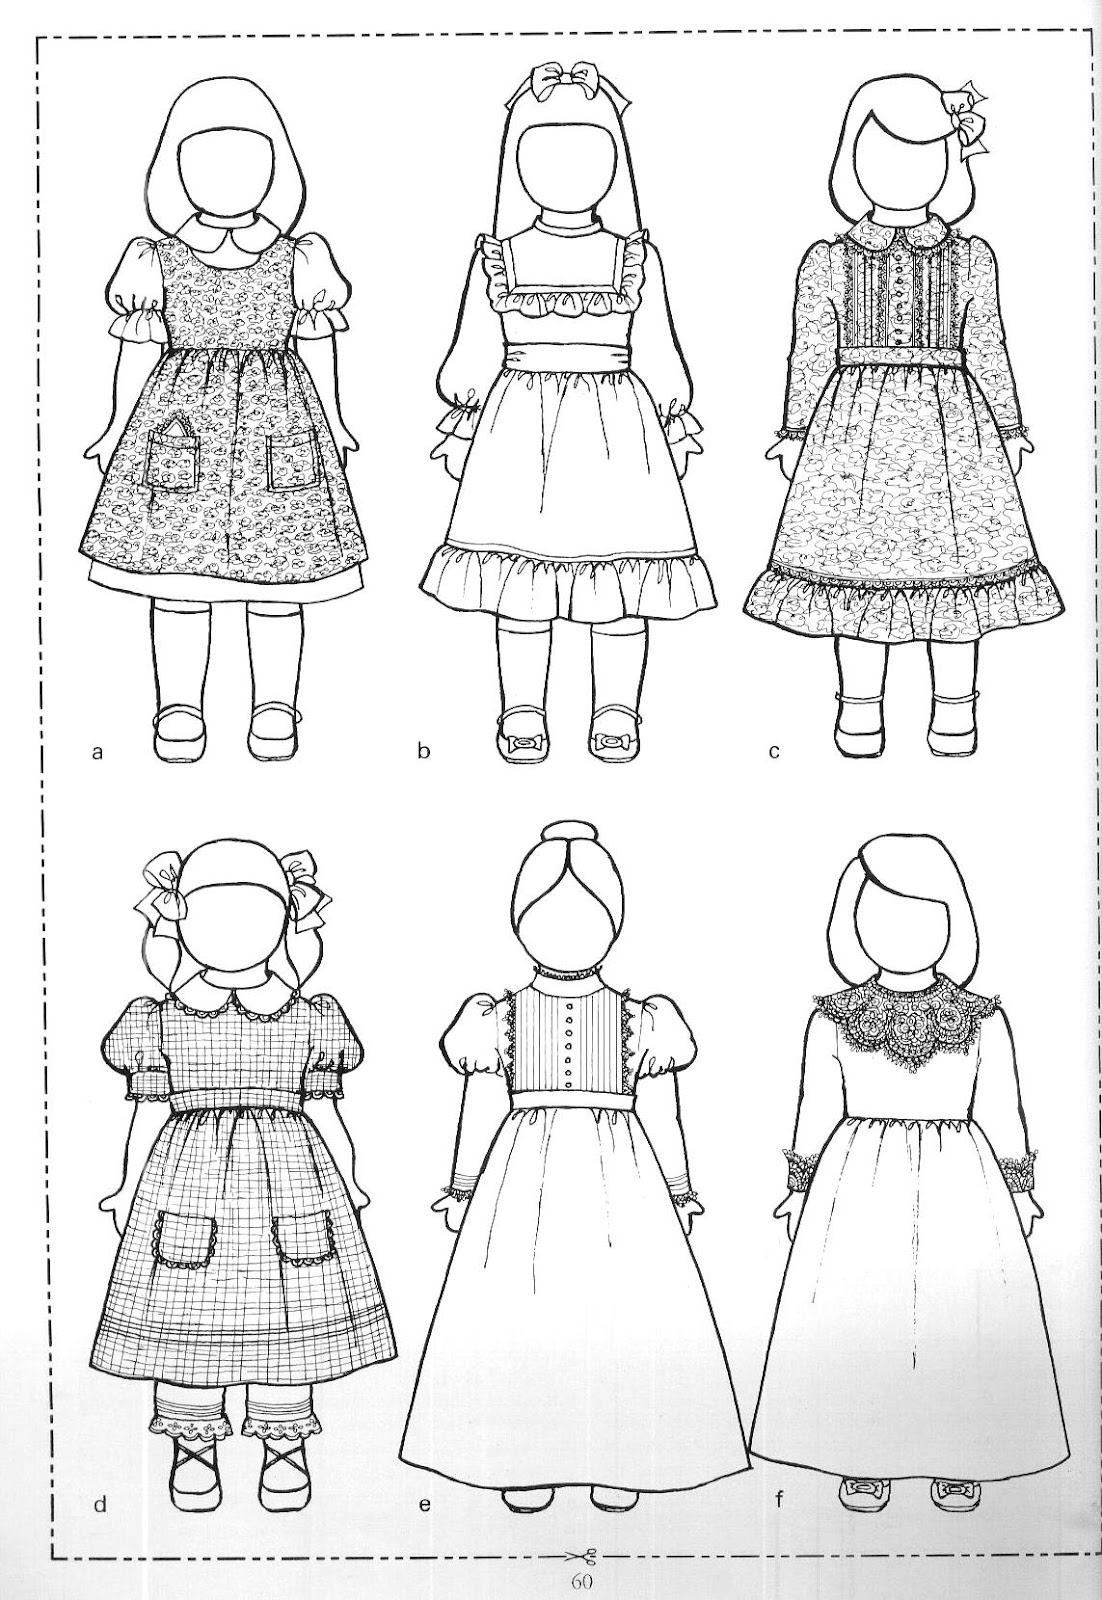 I Have Several Doll Clothing Patterns For You All Of